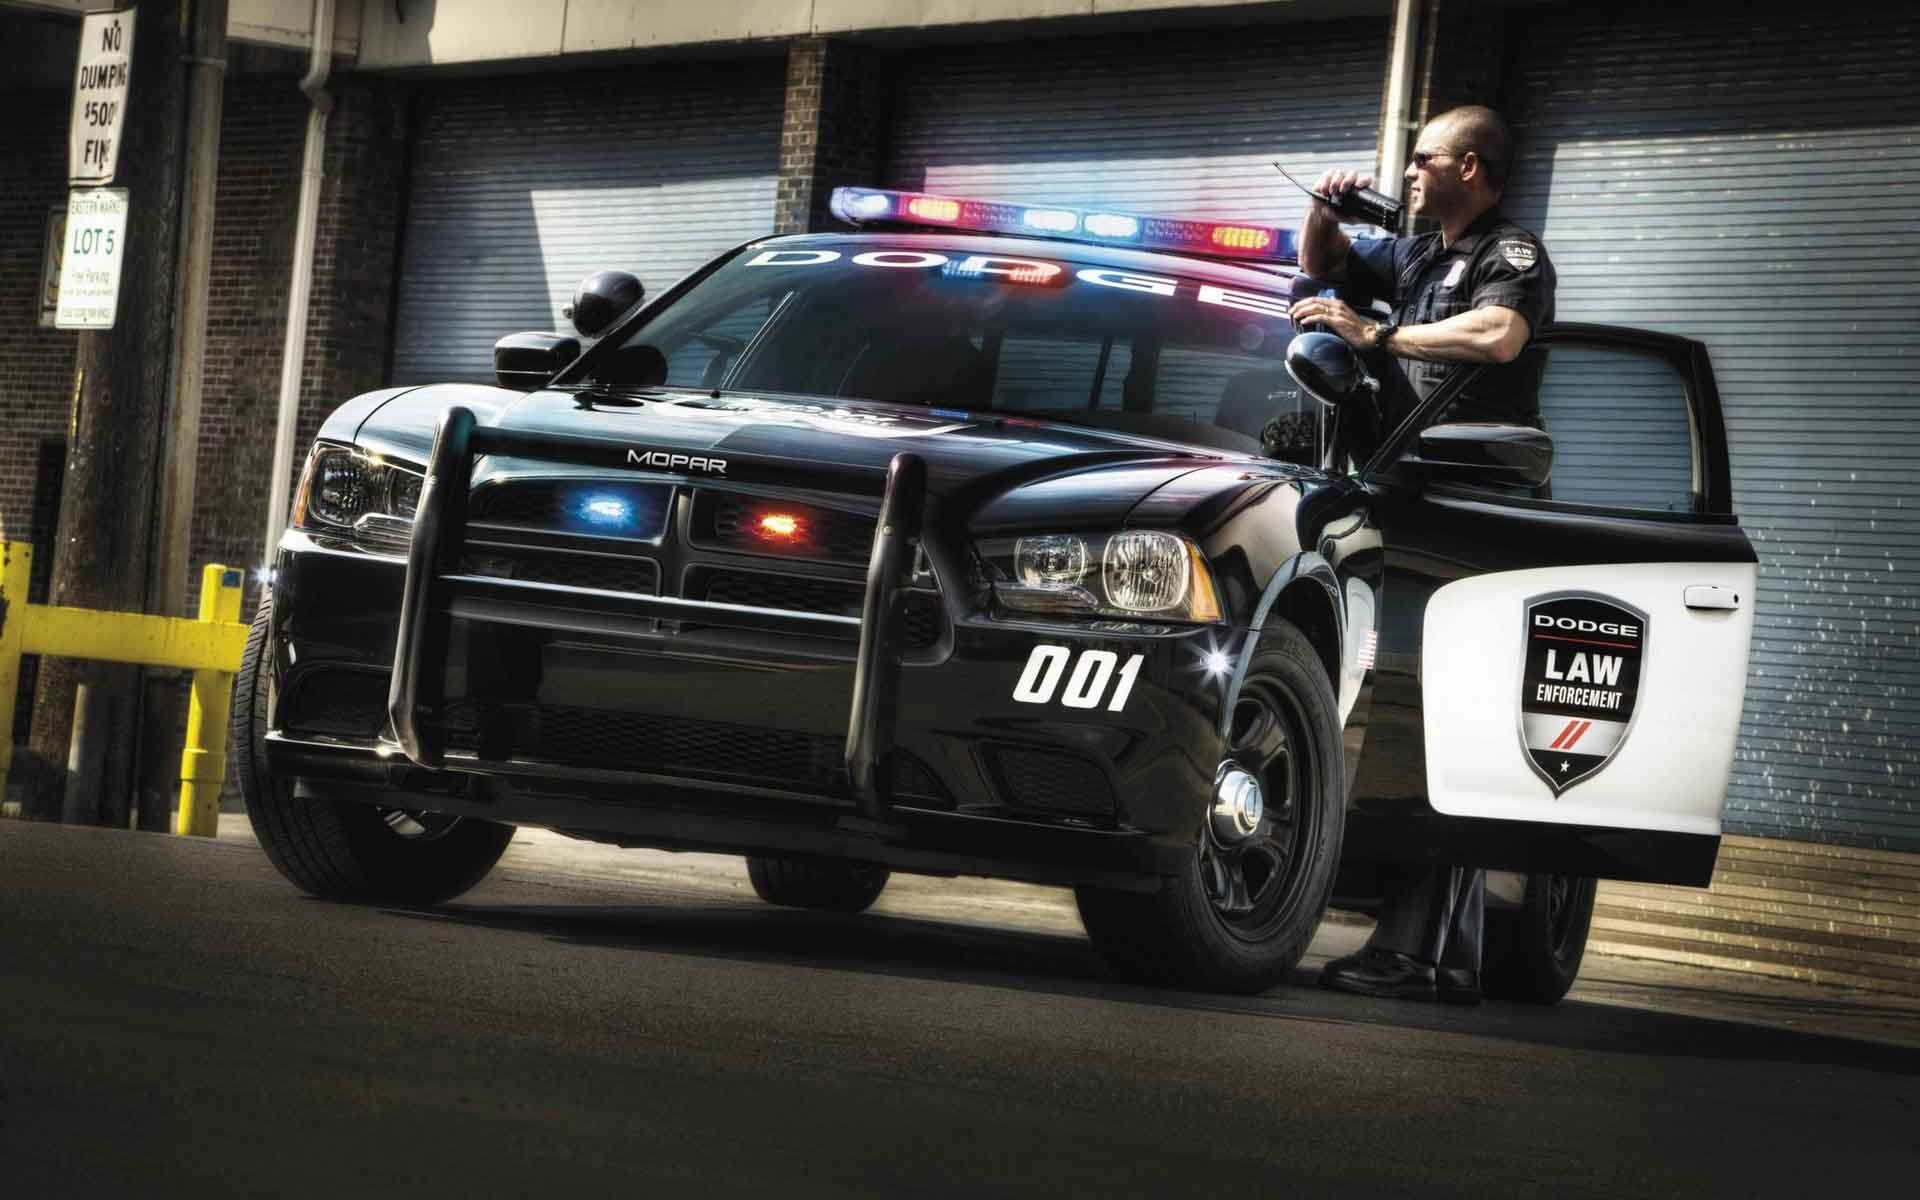 Police Car Wallpapers – Full HD wallpaper search